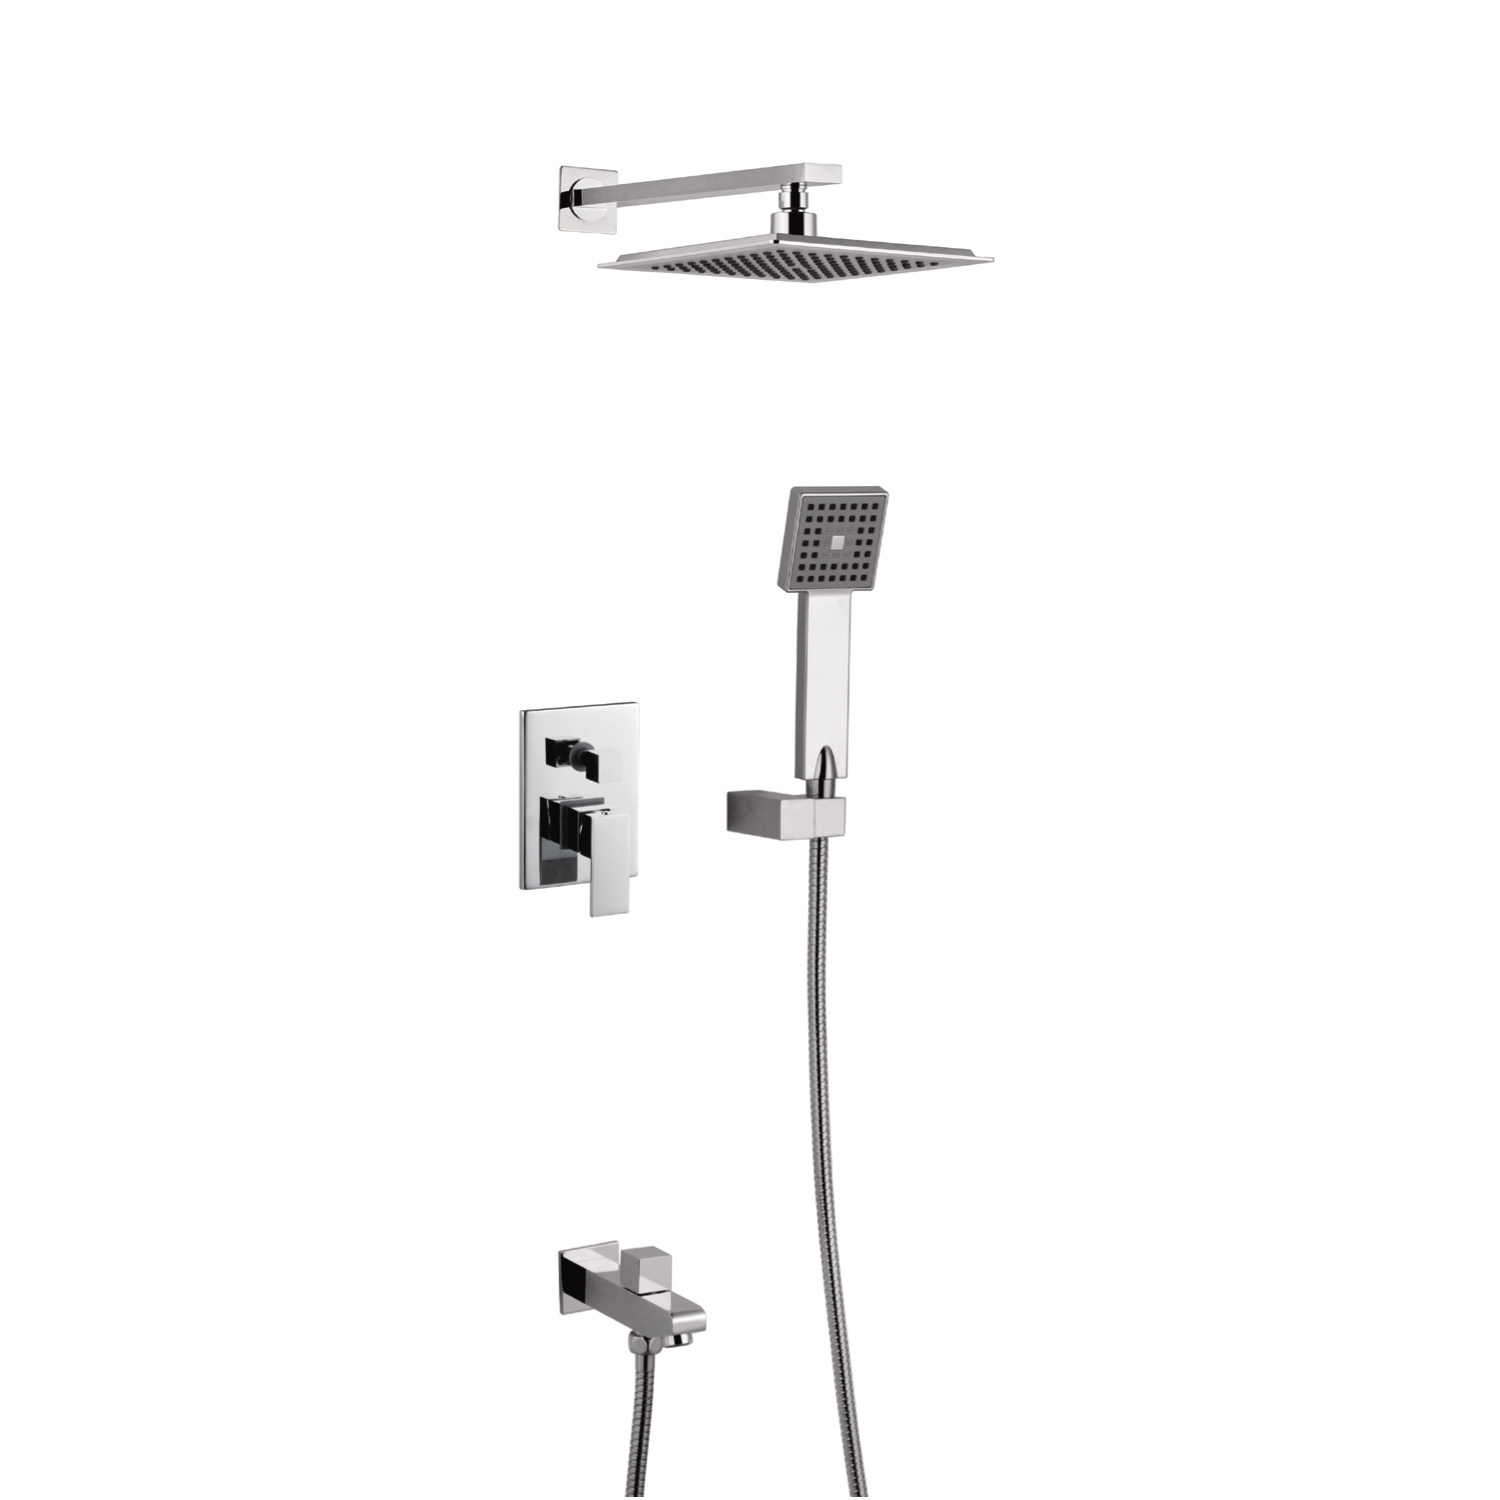 Hot Item Bathroom Luxury Rain Mixer Shower Combo Set Wall Mounted Rainfall Shower Head System Polished Chrome Contain Shower Faucet Rough In Valve